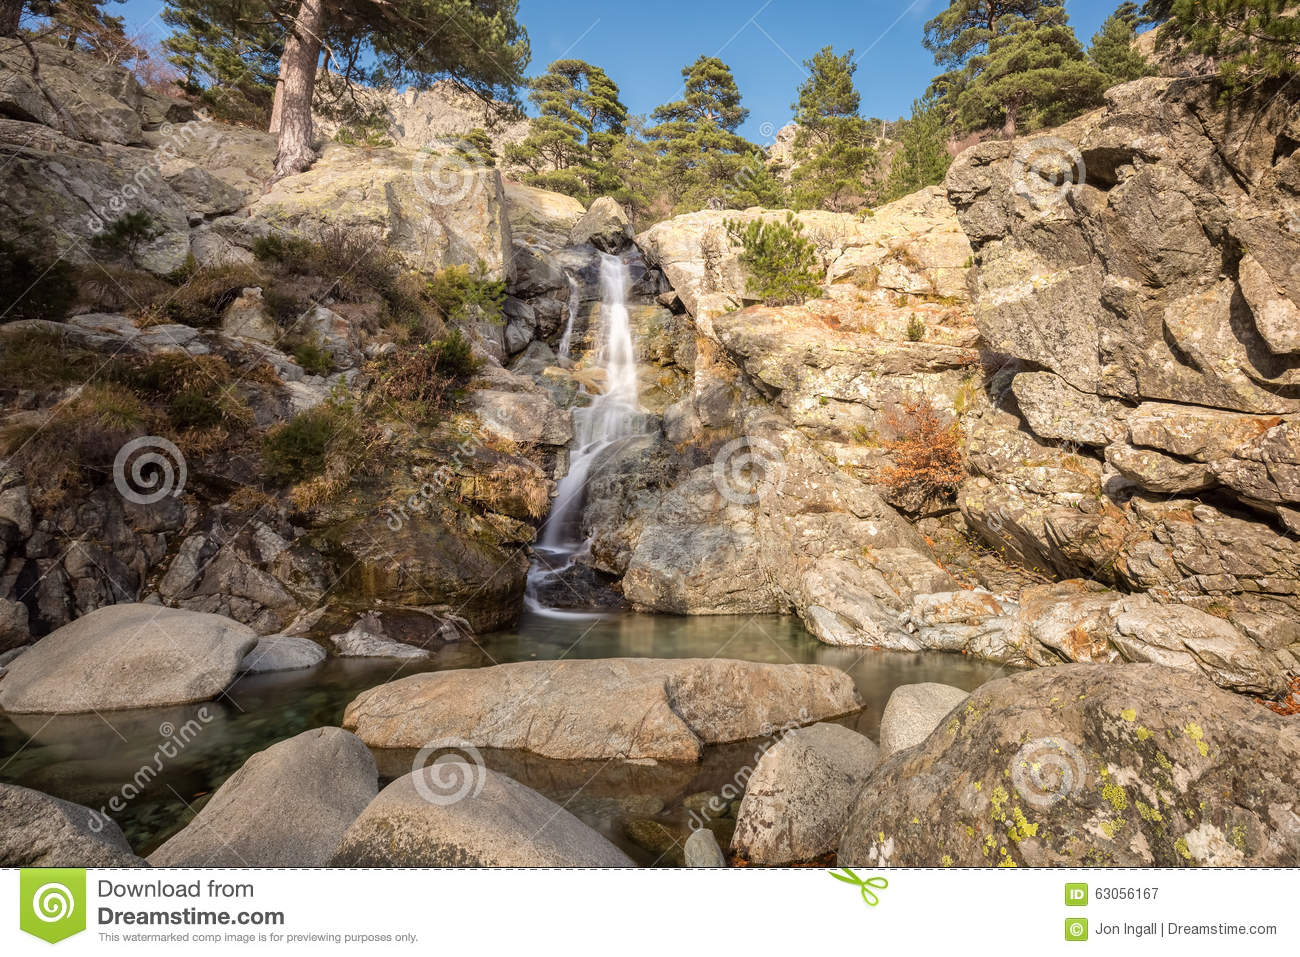 Cascade des anglais waterfall near vizzavona in corsica stock photo image 63056167 - Crystal pools waterfall ...